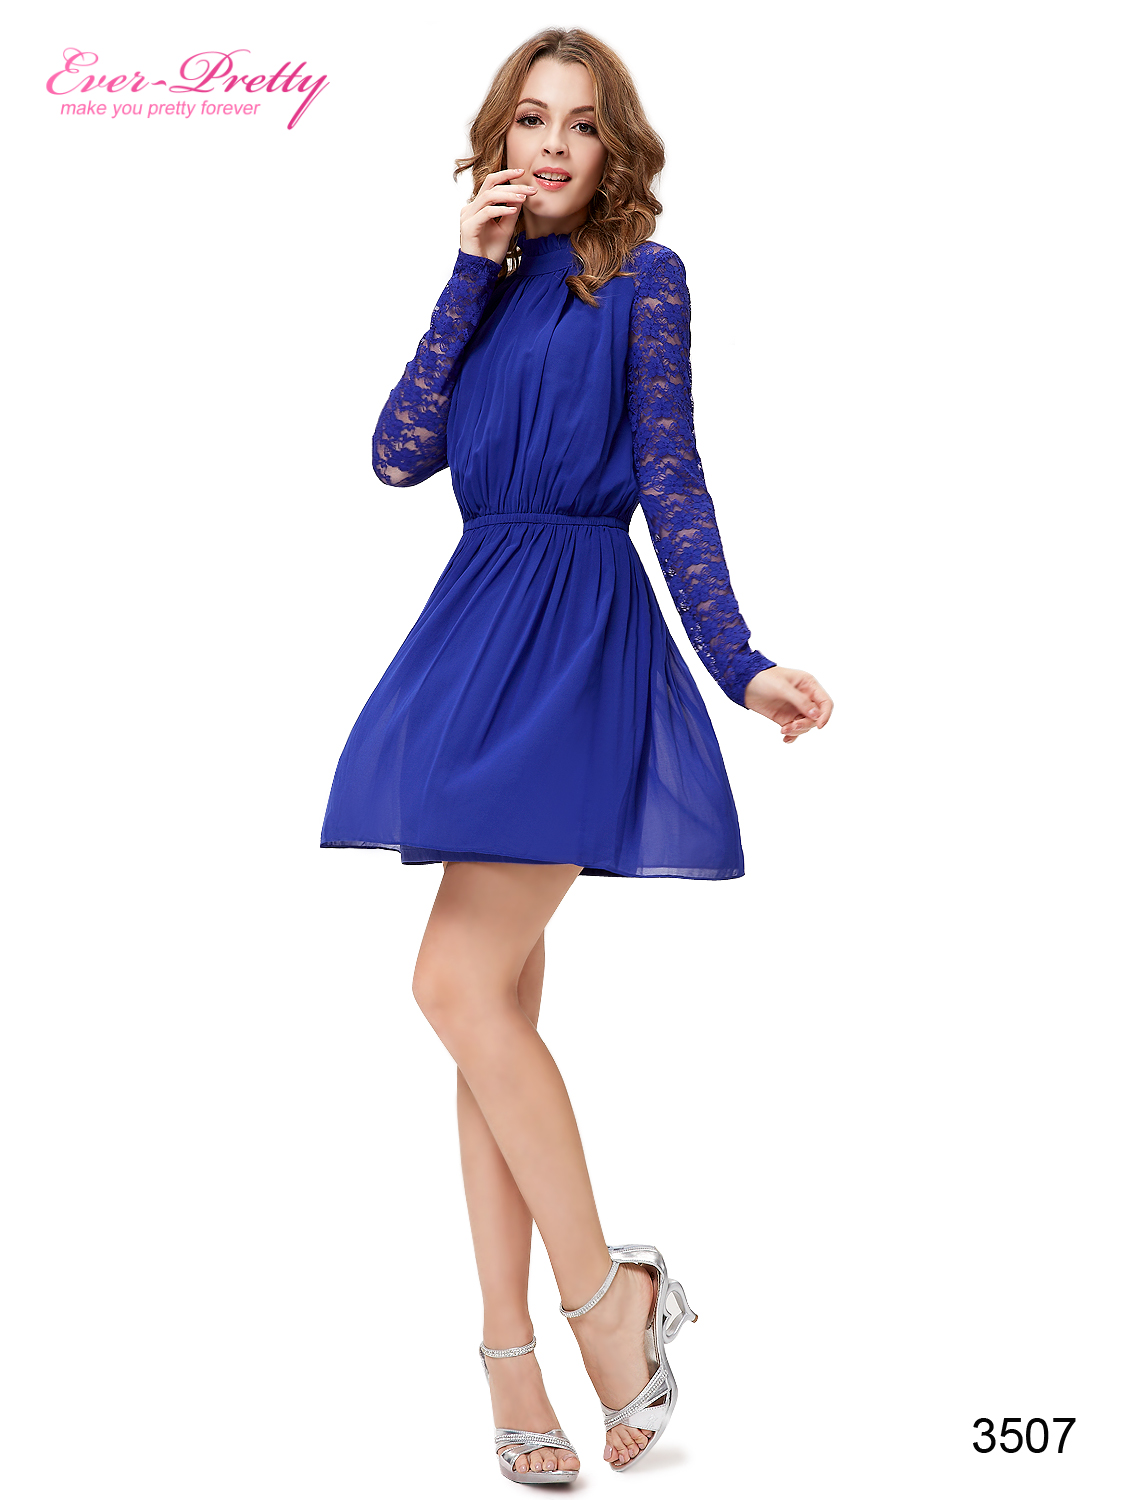 Falbala Sapphire Blue Long Lace Sleeves Ruffles Chiffon Cocktail Dress - Ever-Pretty